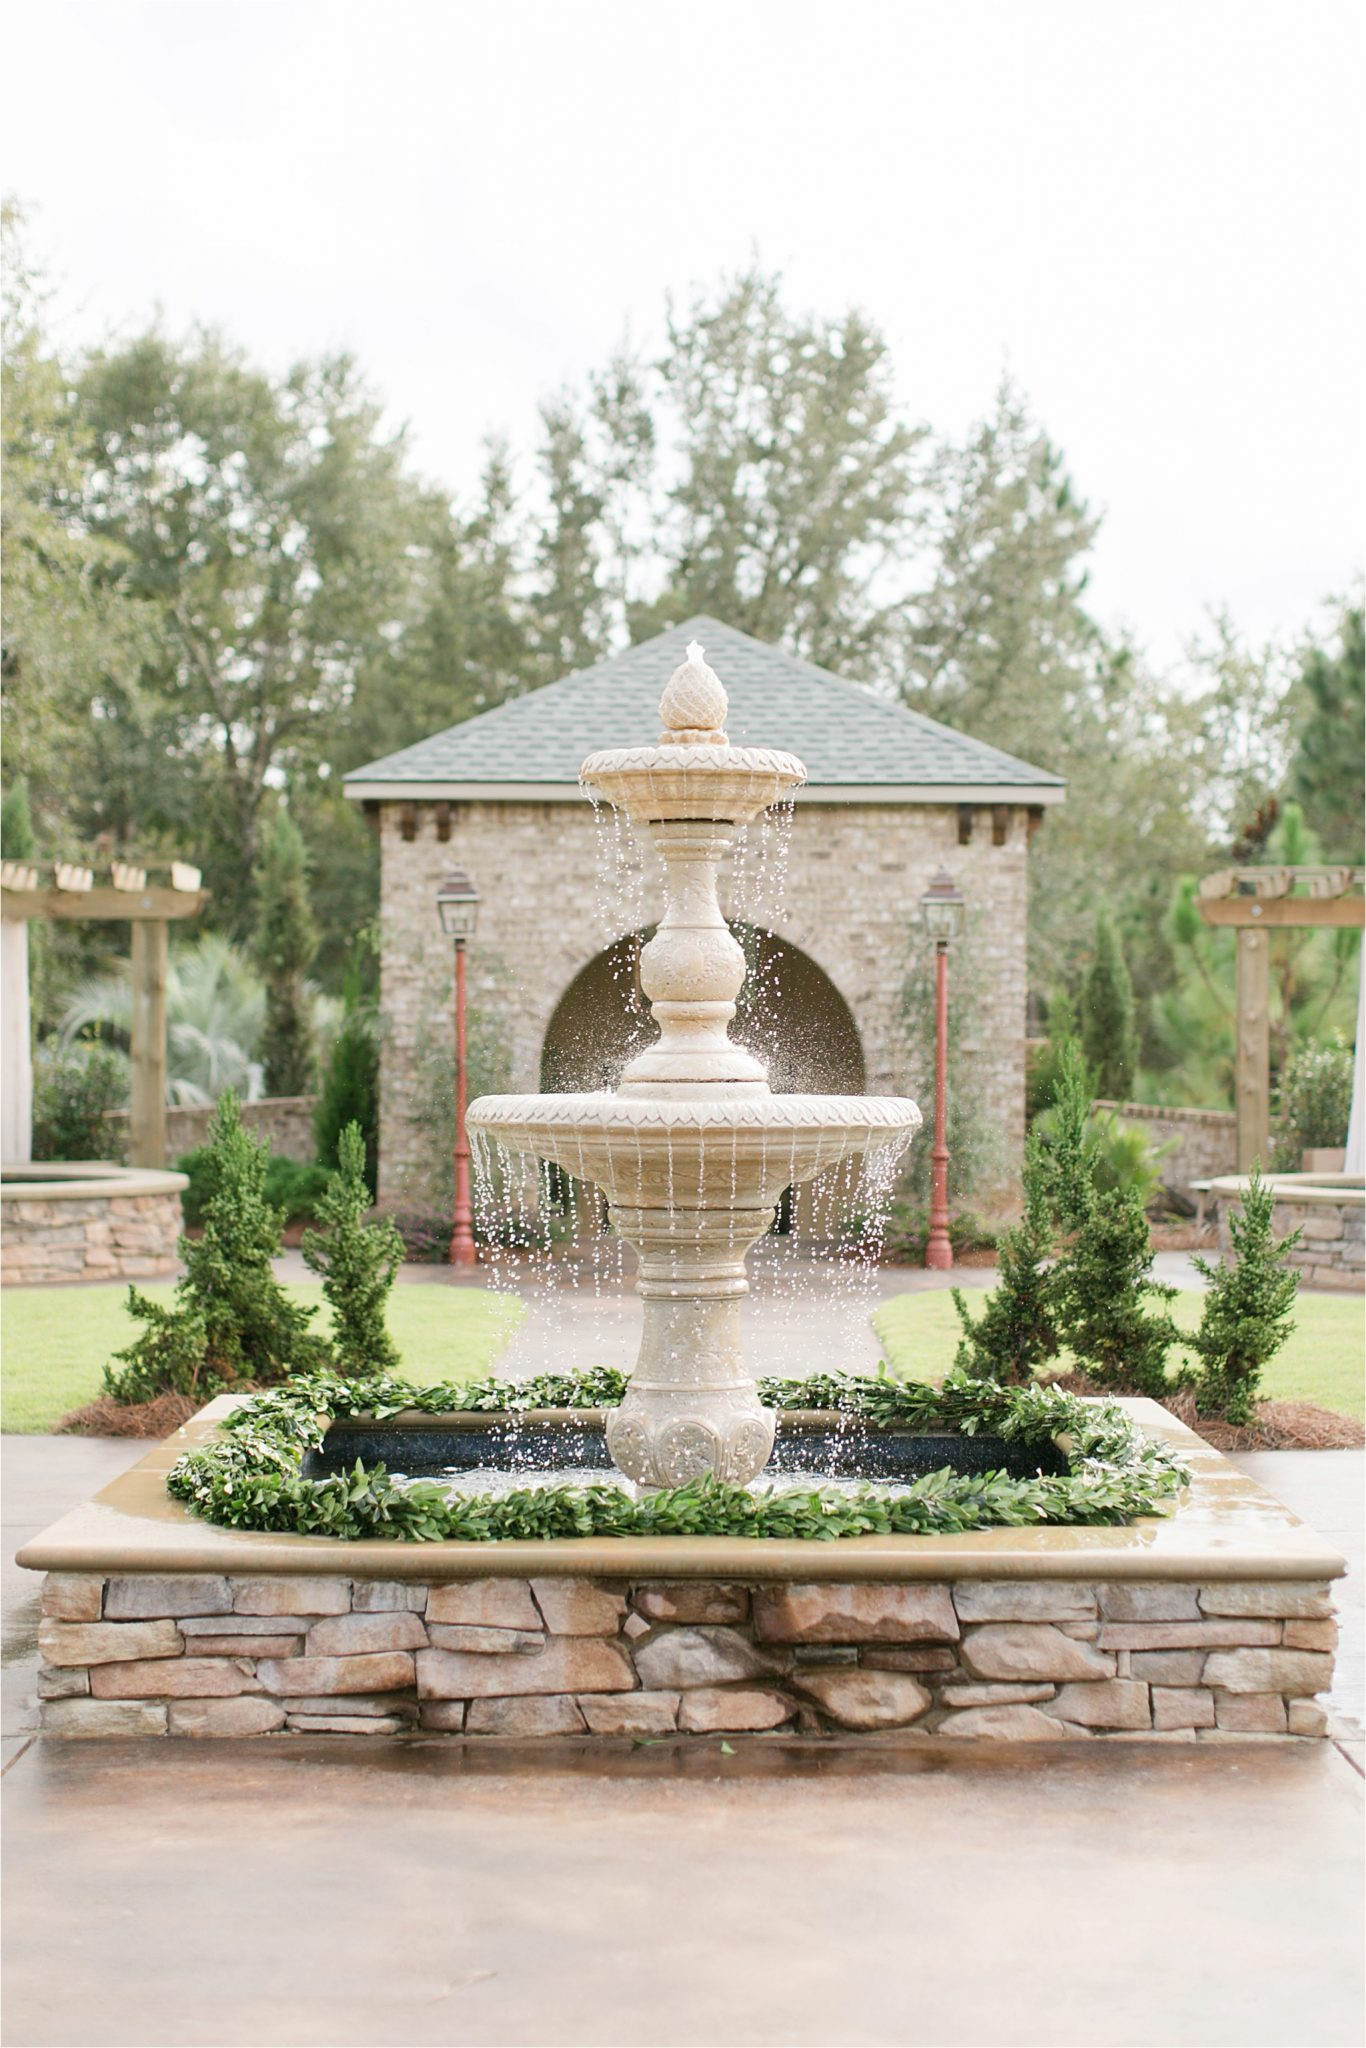 Bella Sera Gardens-Alabama-wedding locations-venues-fountain